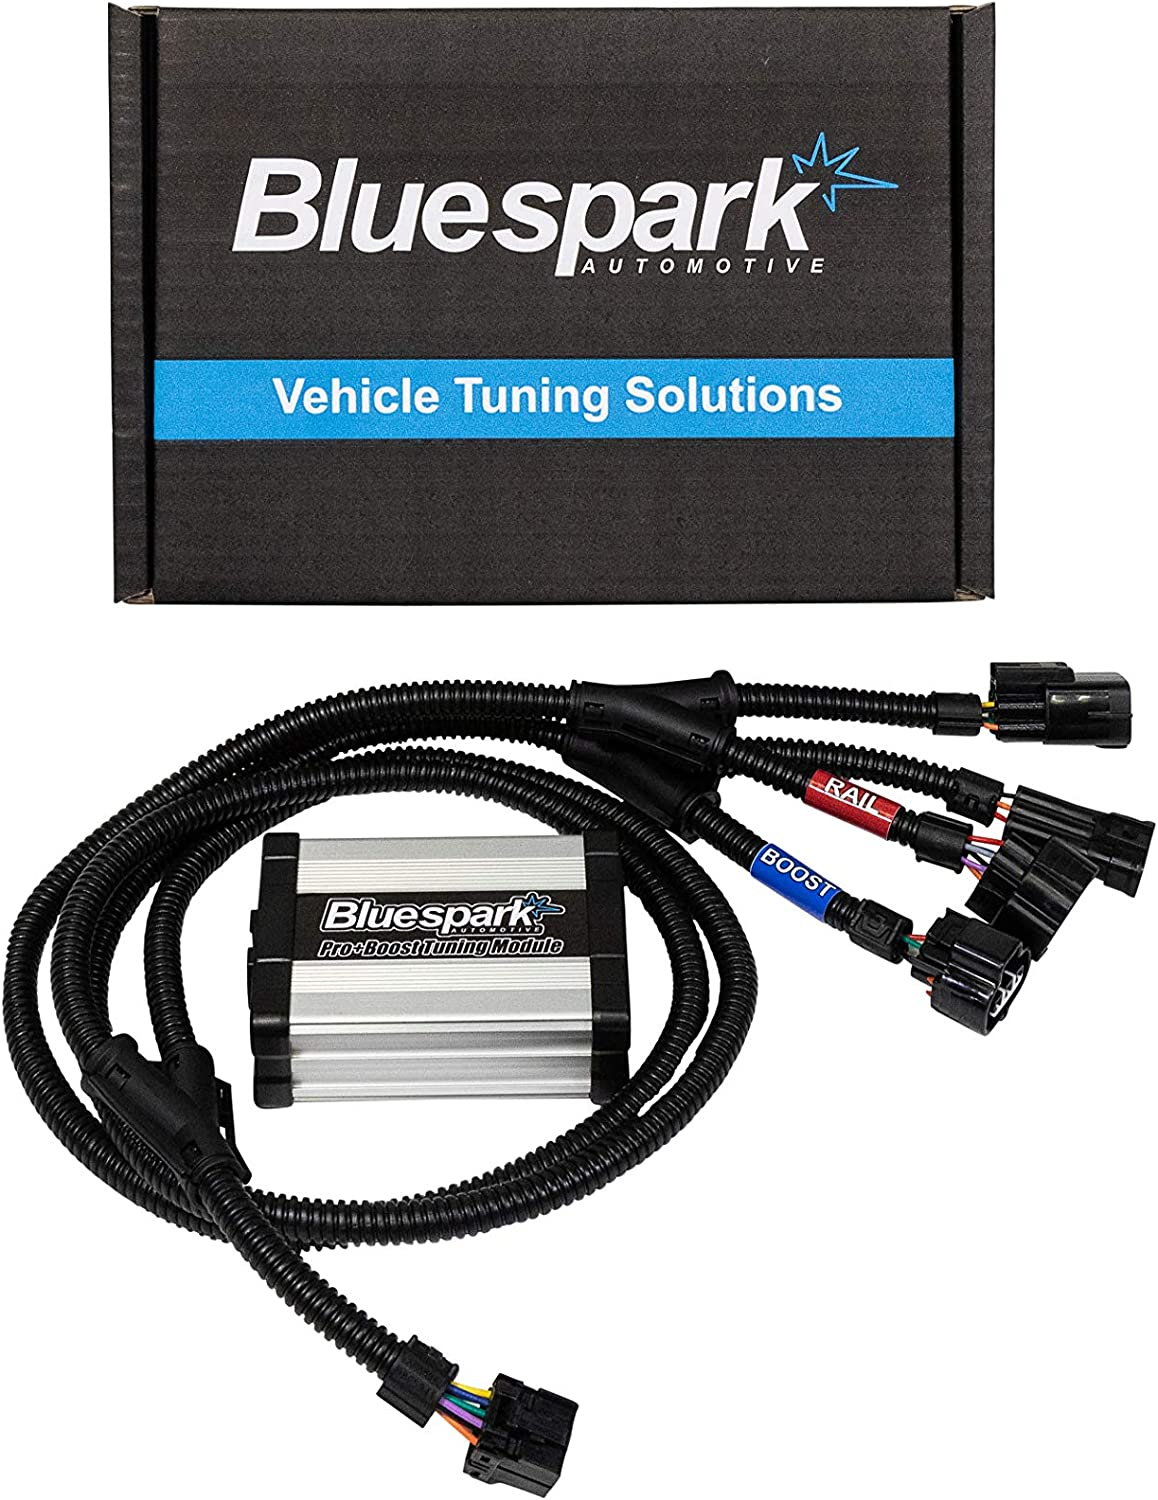 90PS Boost Chip Tuning Box 407 1.6 hdi Bluespark Automotive Pro